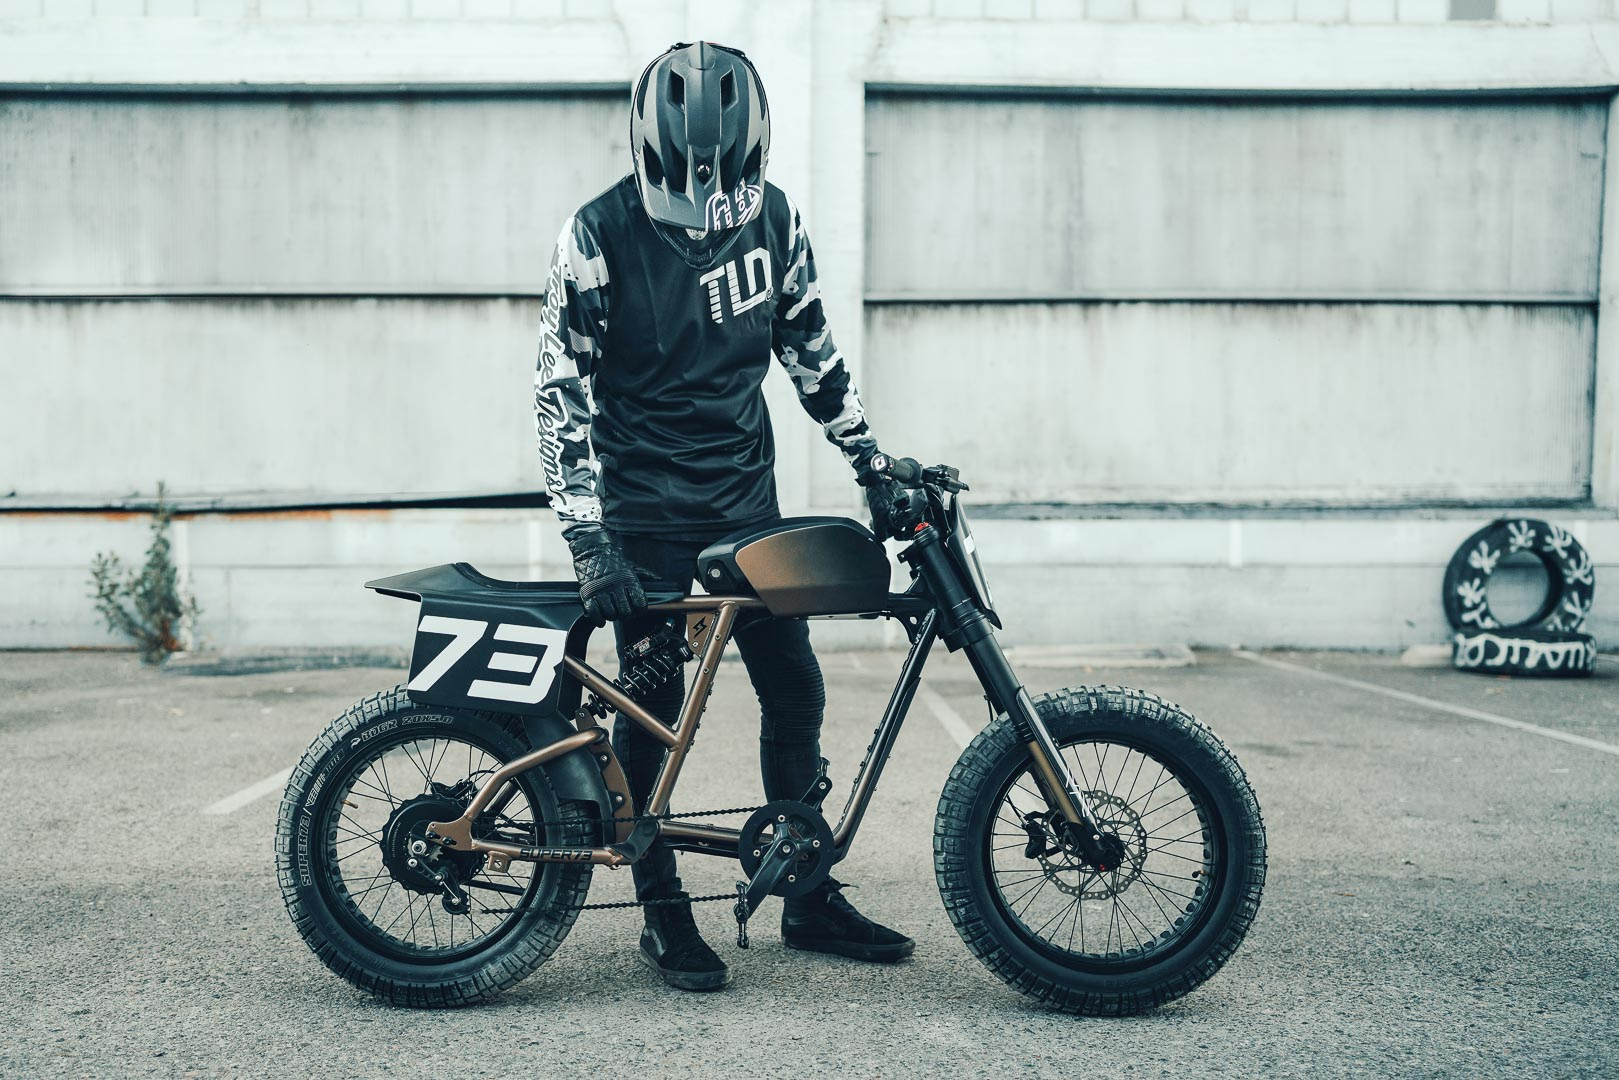 Super73 Flat Track RX - Price